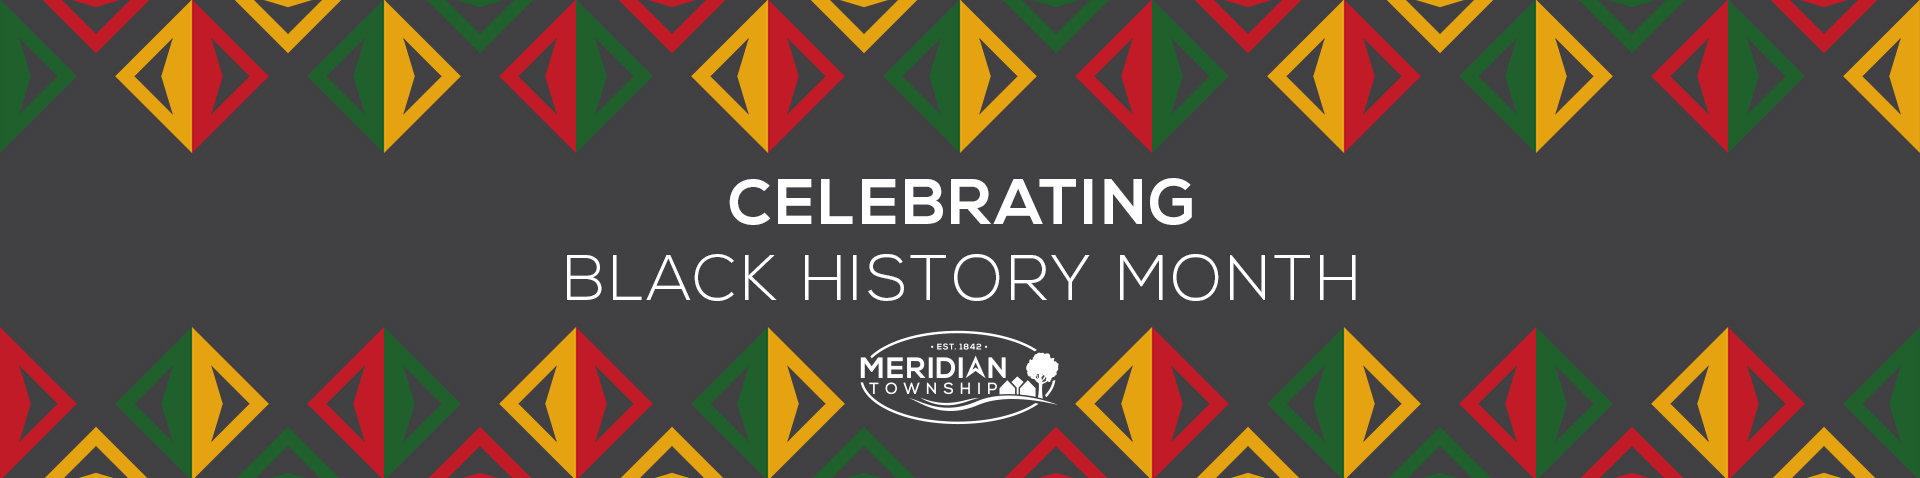 Black History Month homepage banner